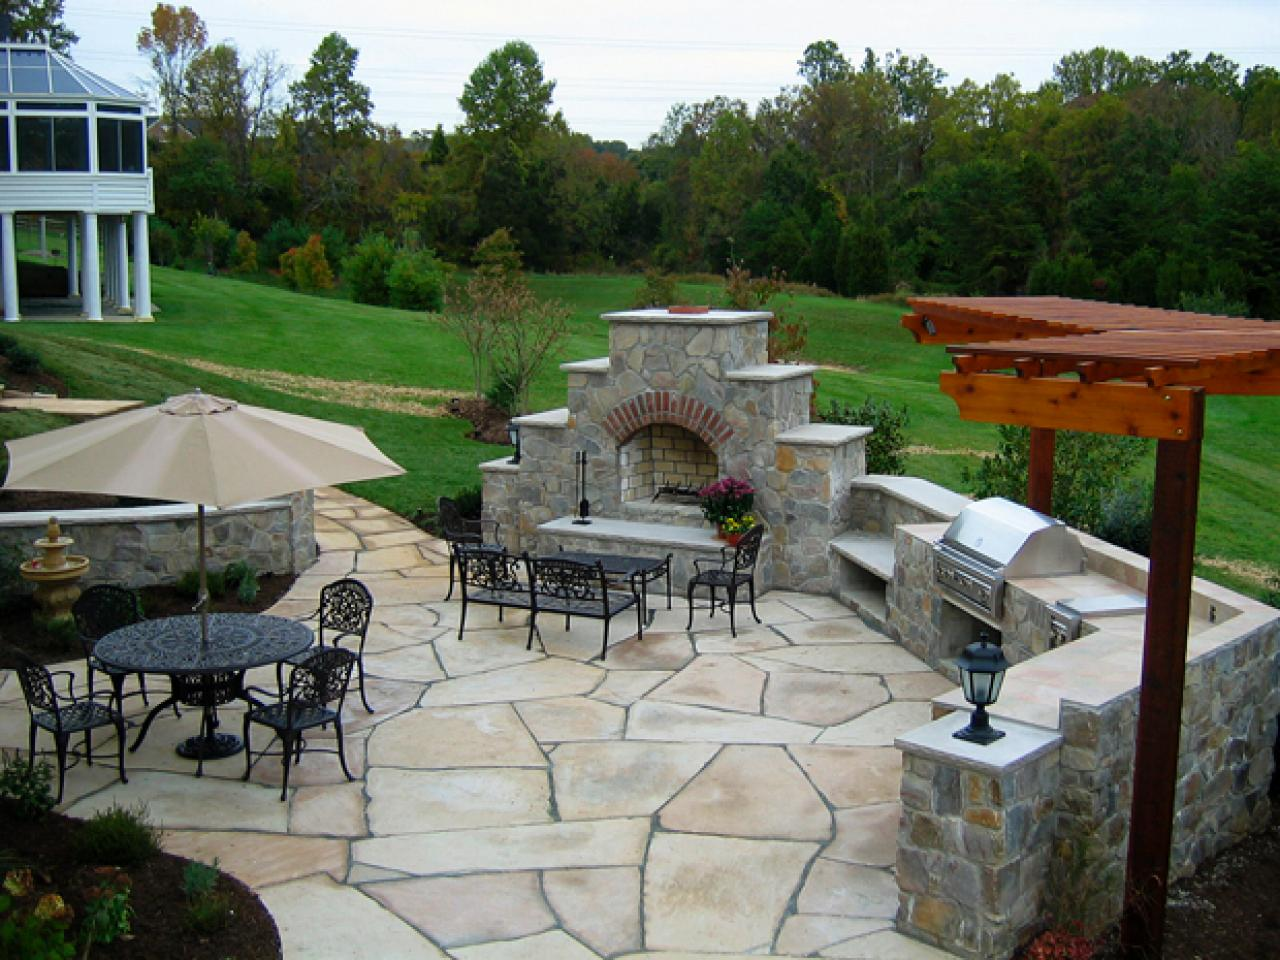 backyard patio ideas backyard patio designs they design with regard to backyard patio designs PARSUCY